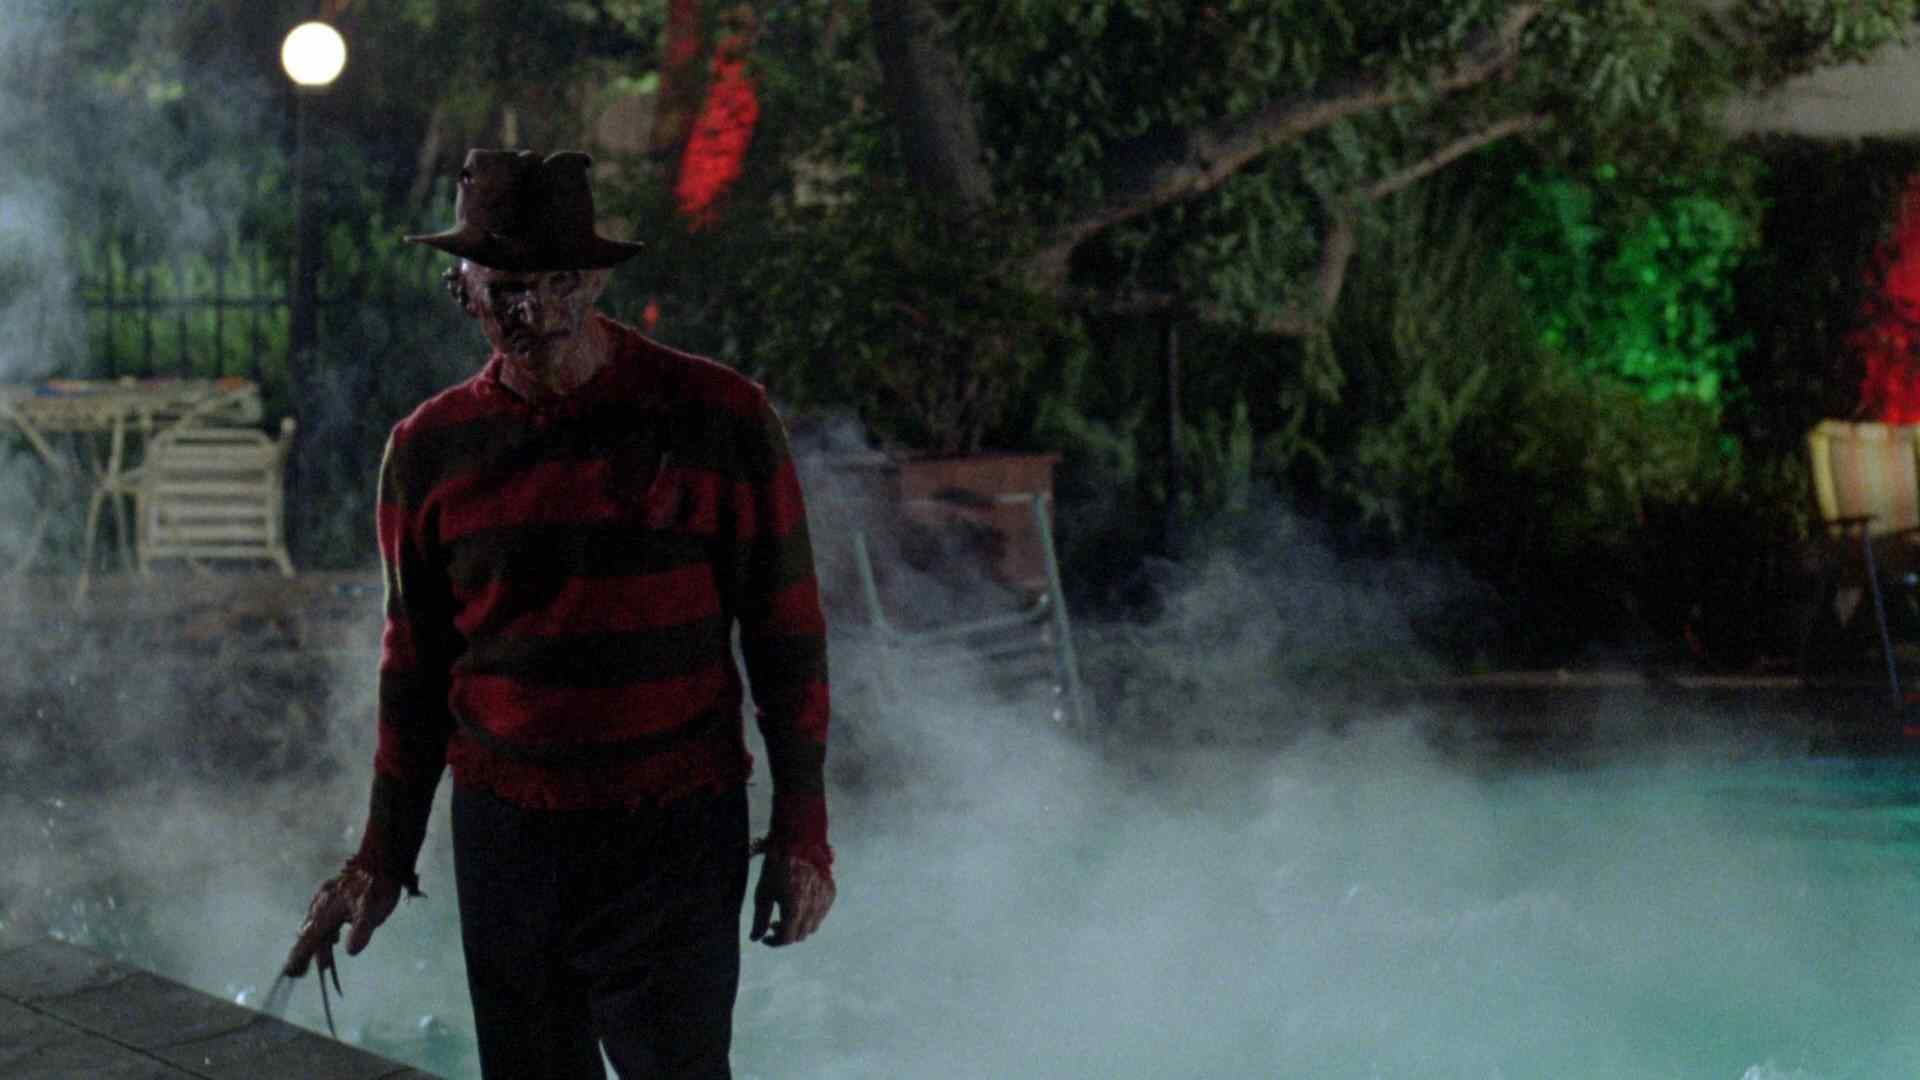 The infamous freddy Krueger from A Nightmare on Elm street.